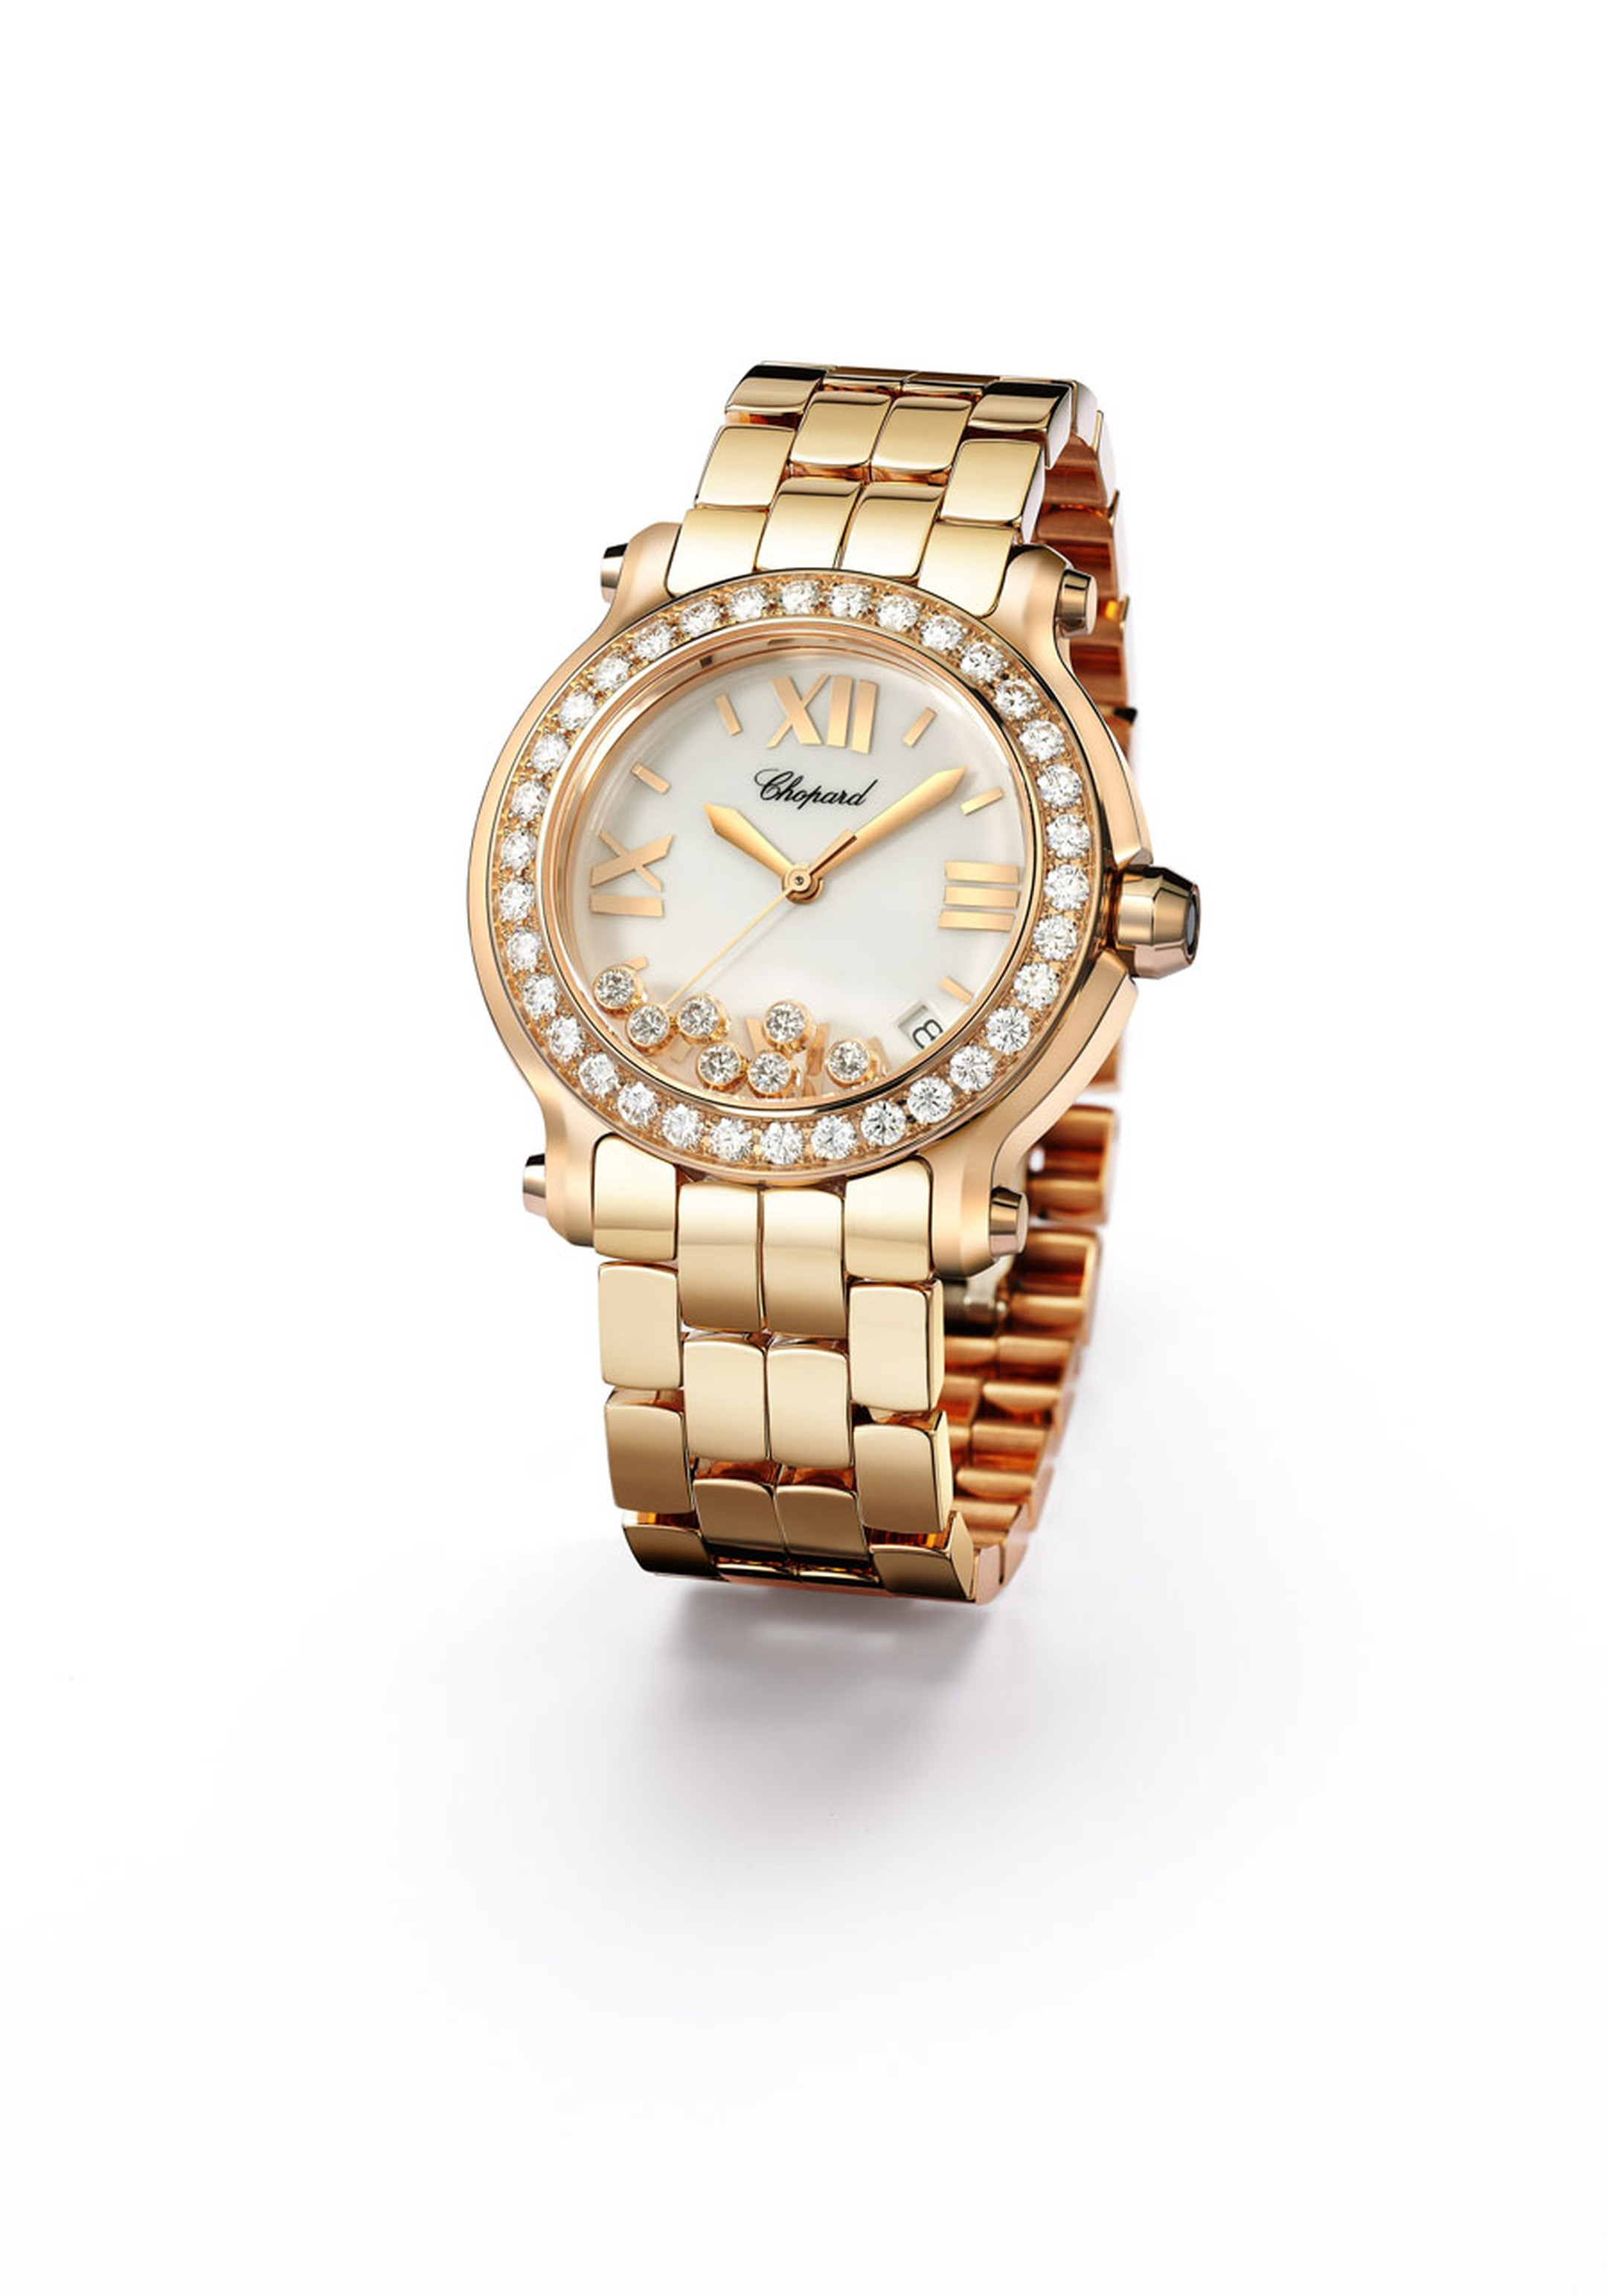 ChopardHappySport13.jpg